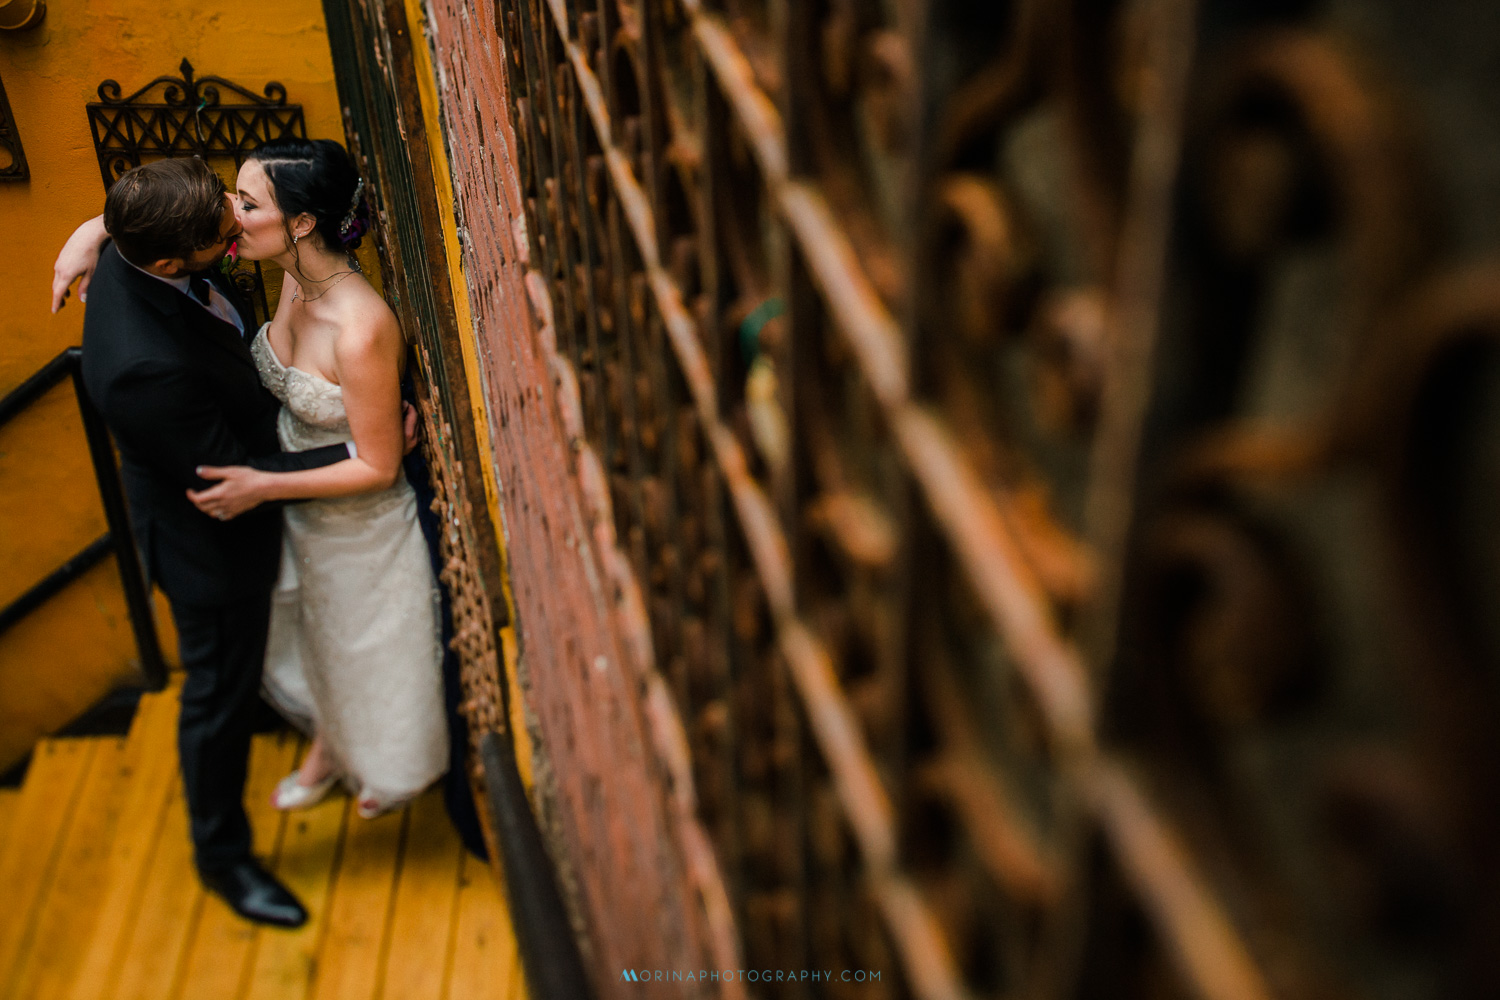 Jill & Rhett Wedding at Artesano Iron Works, Manayunk Philadelphia29.jpg